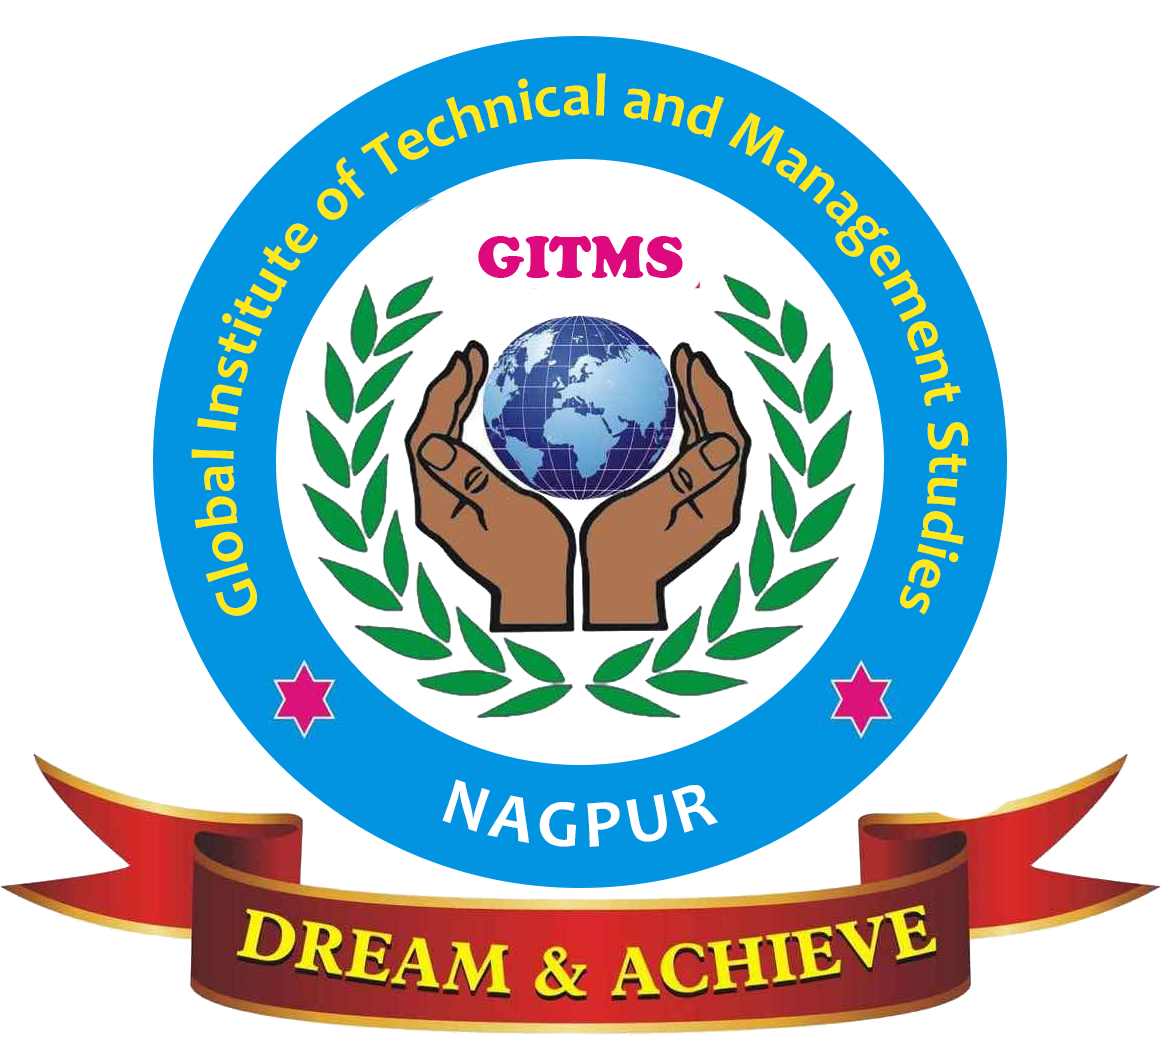 Global Institute of Technical and Management Studies